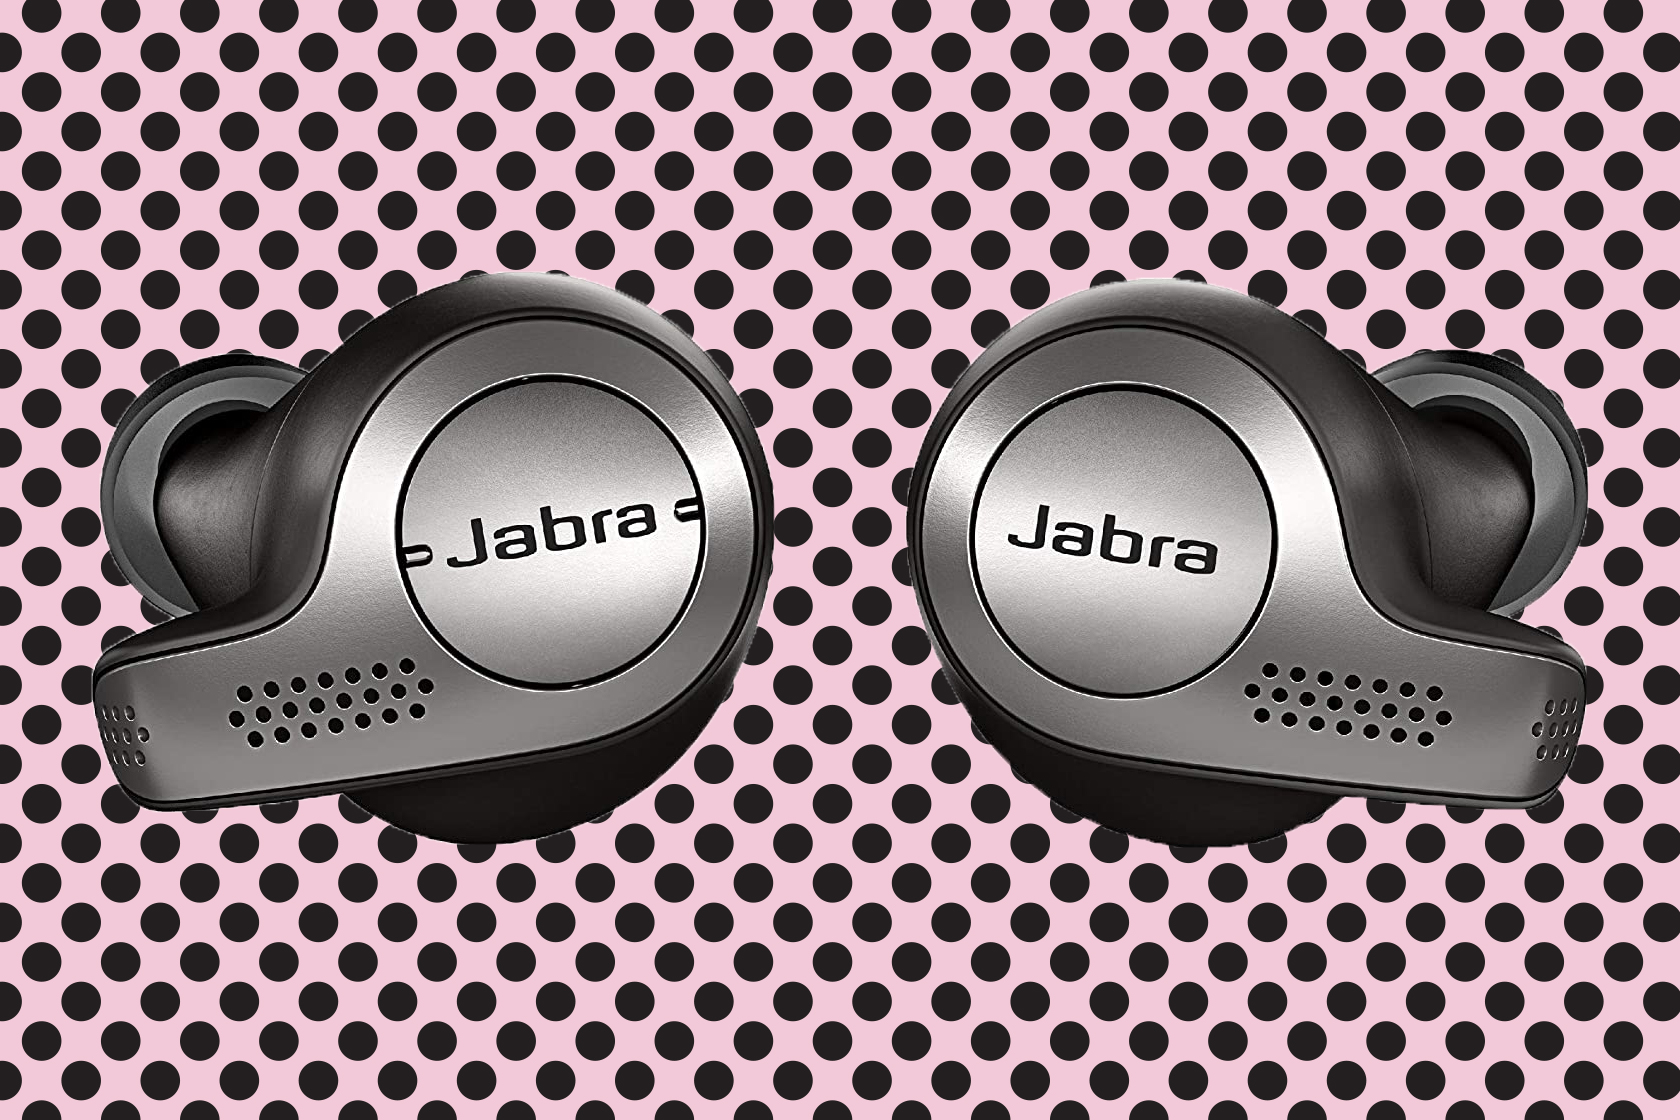 These Jabra Bluetooth headphones are a steal for $50